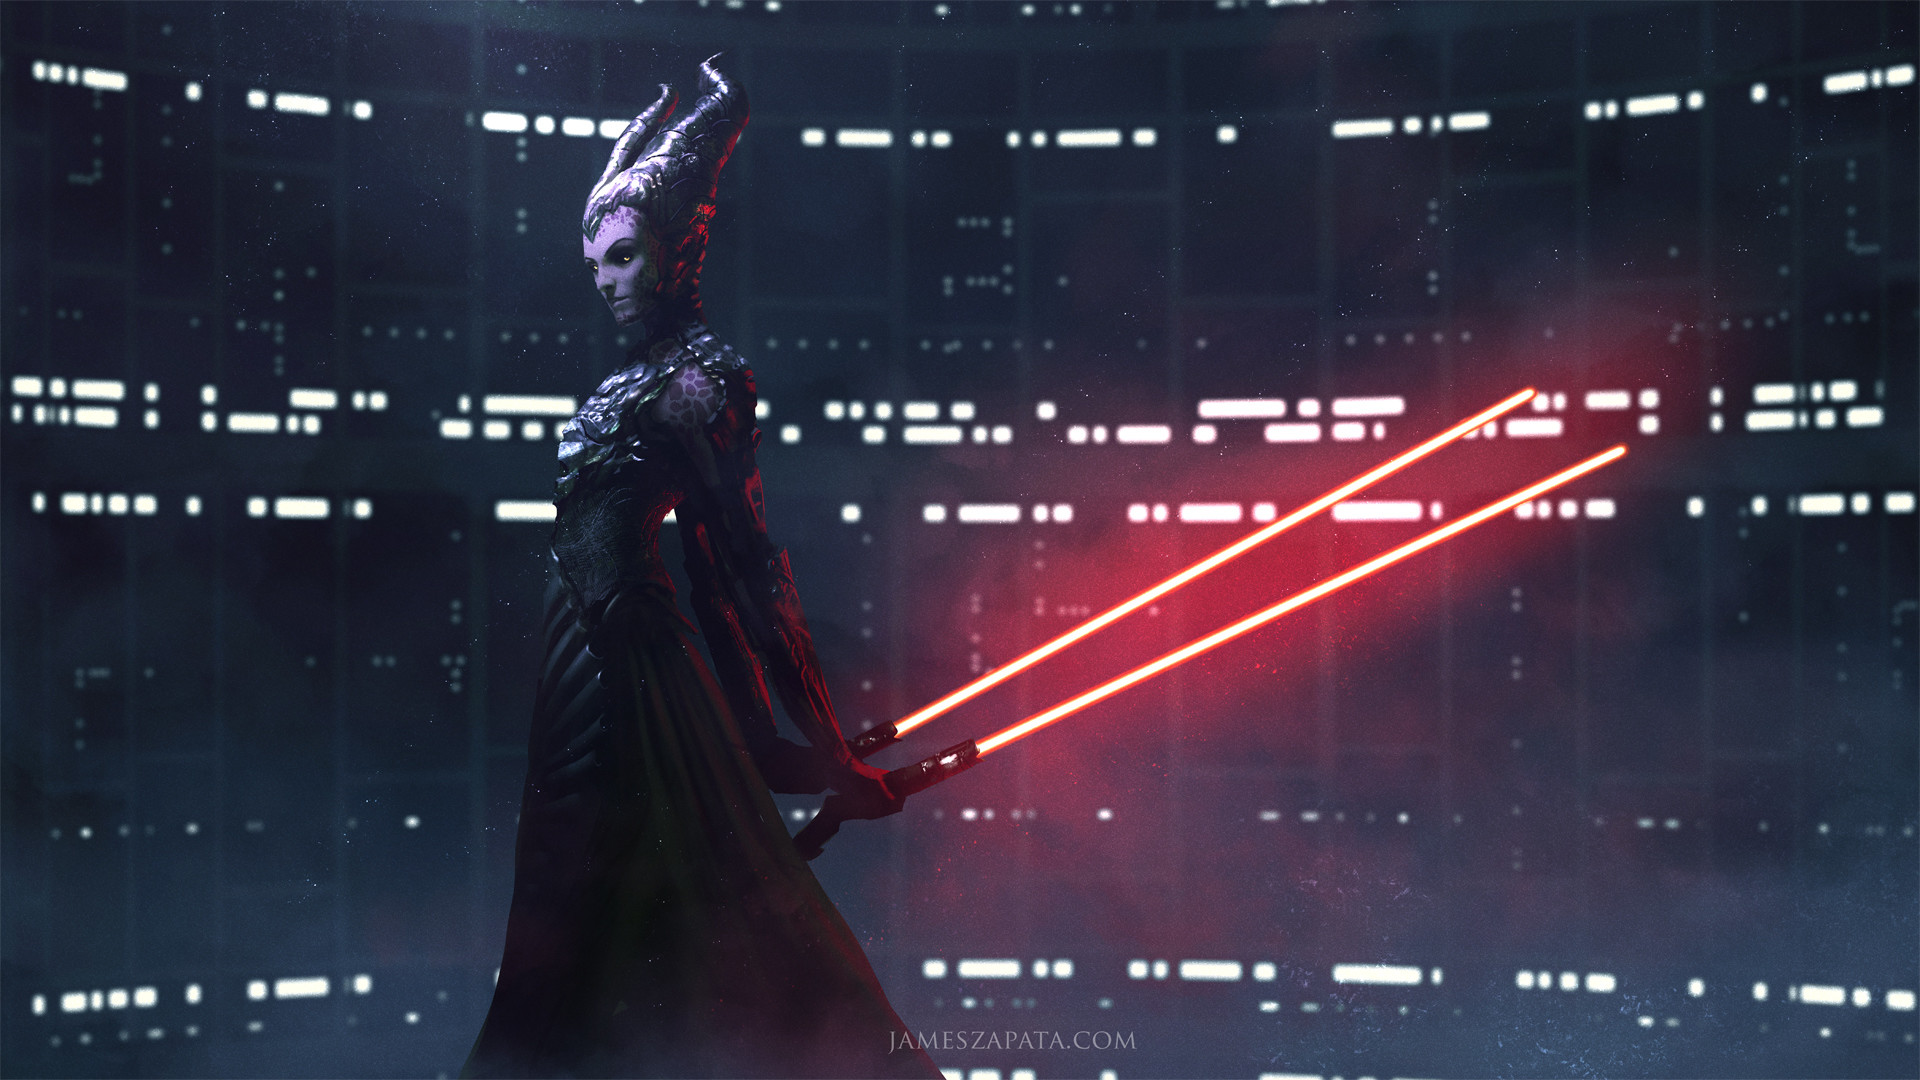 Darth Maleficent wallpaper. Maleficent Sith Lord red lightsabers, Star Wars